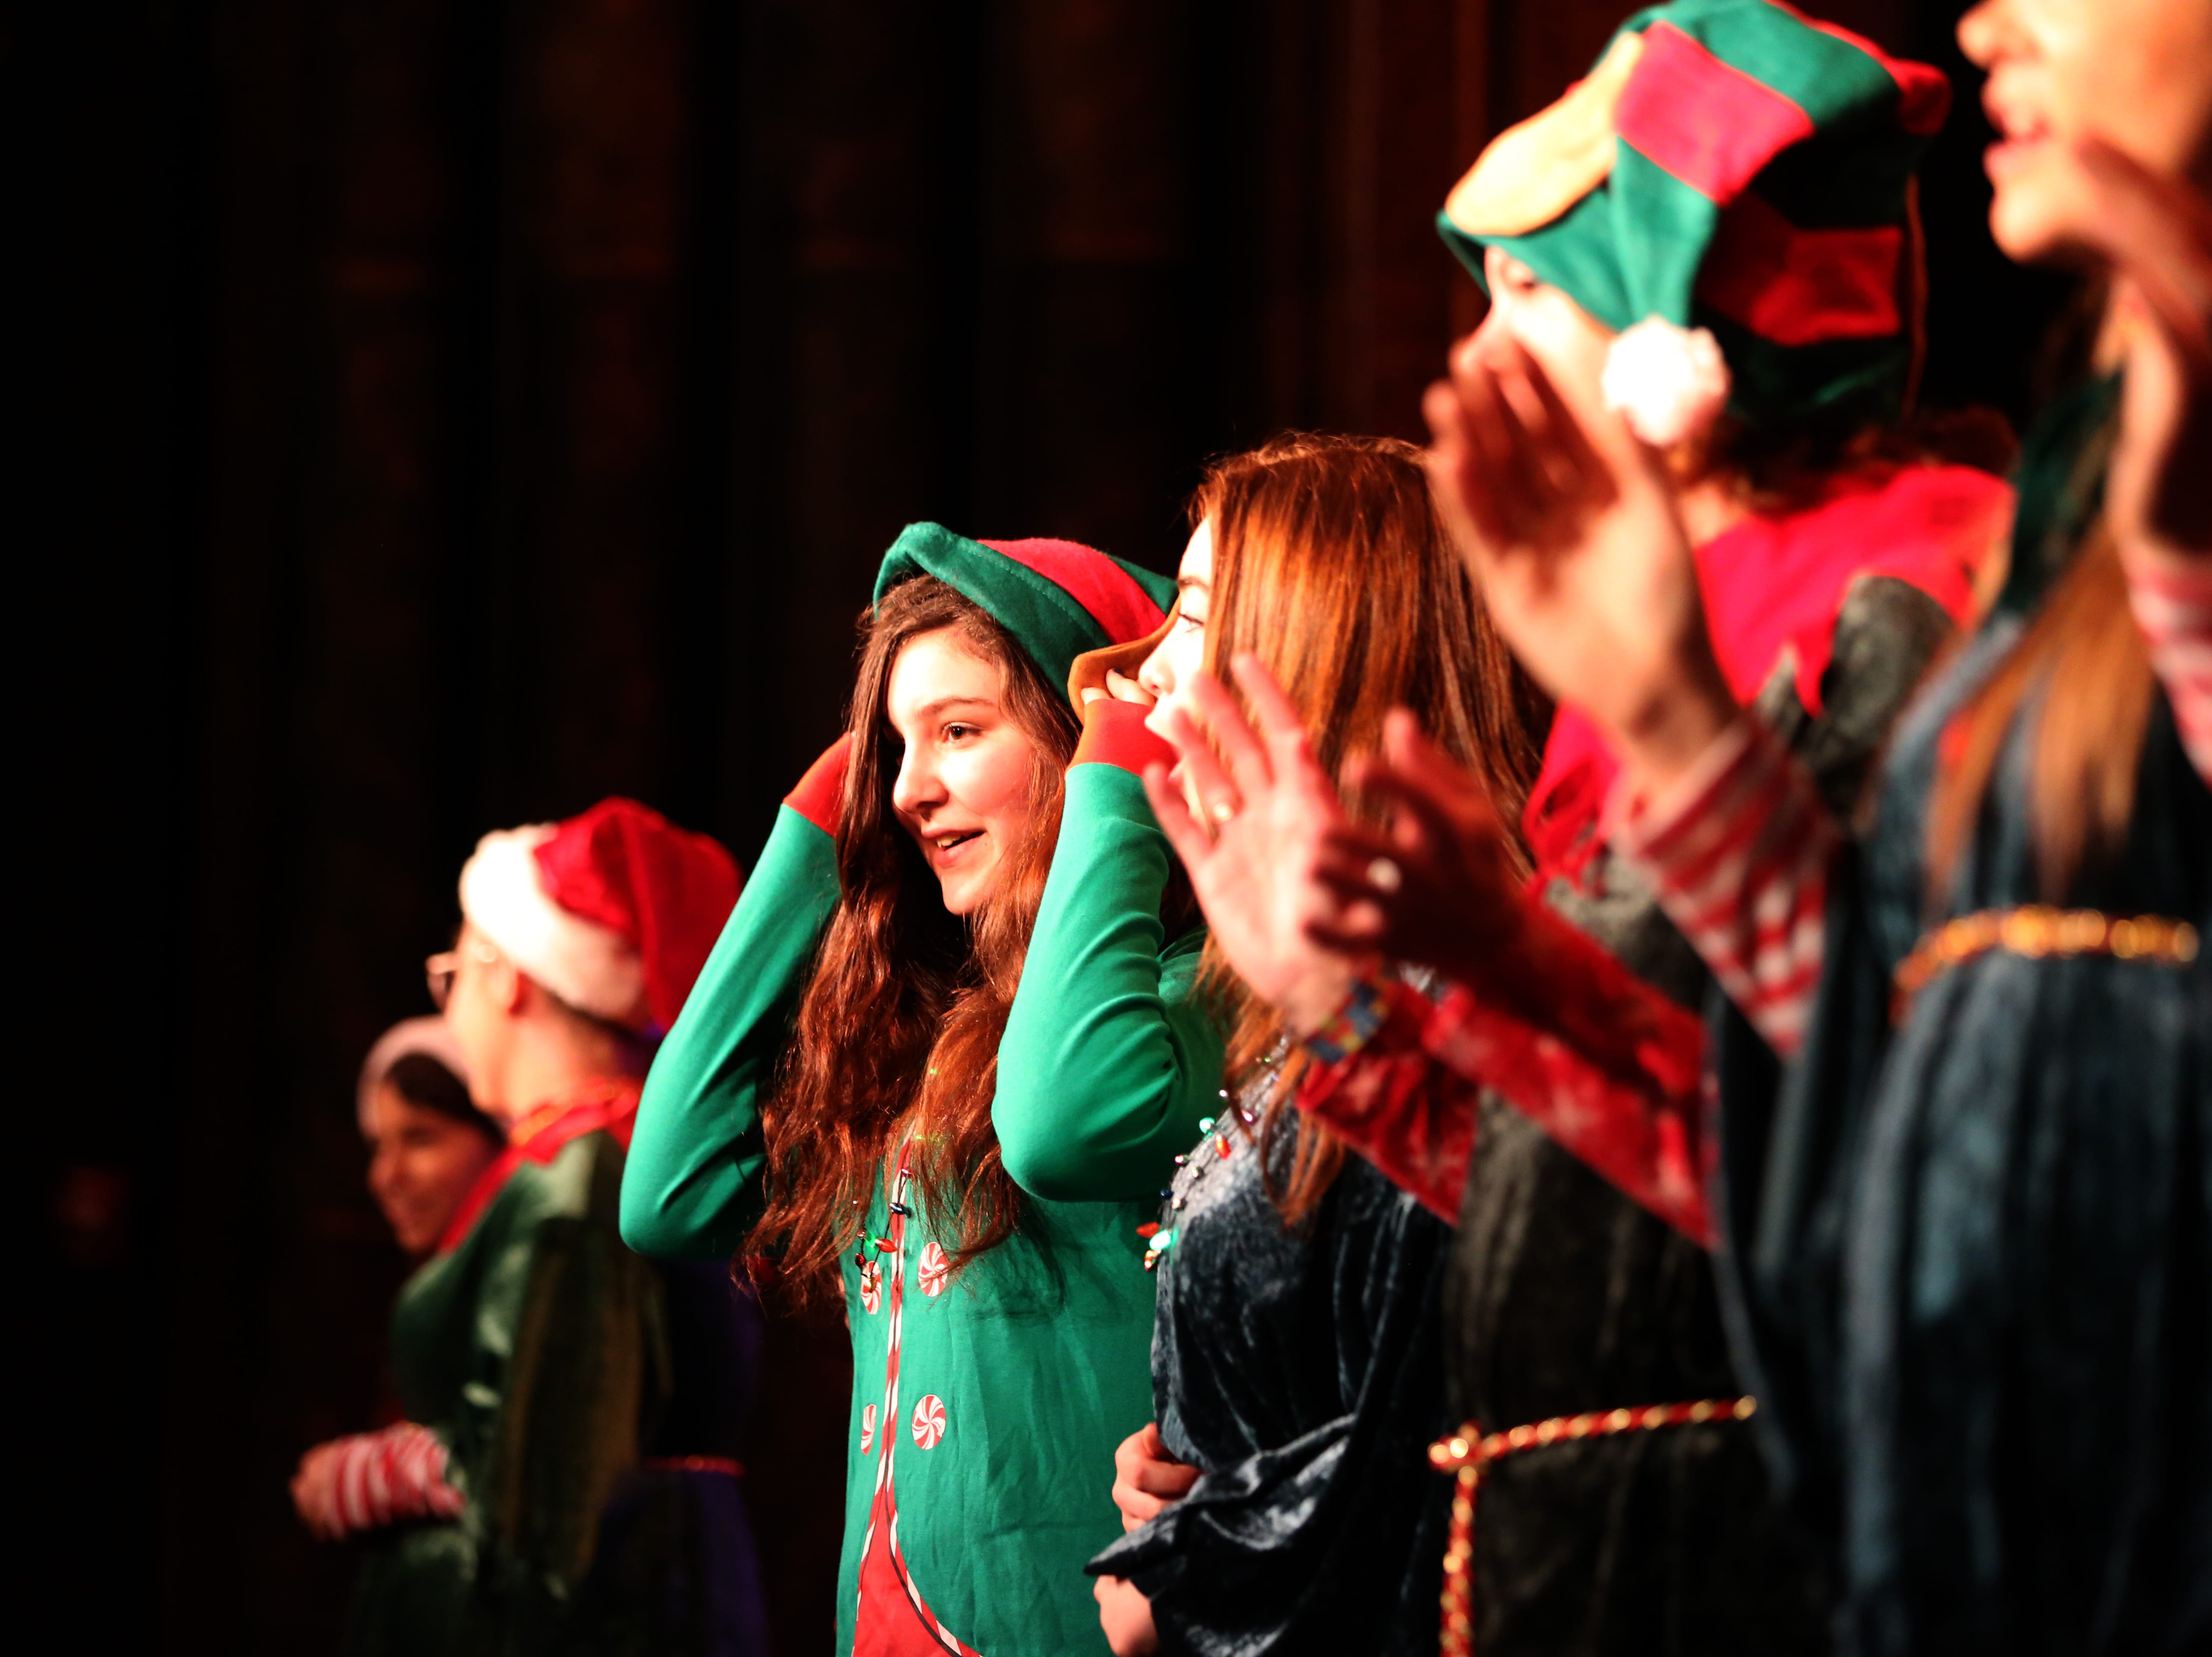 Elves come on stage before Santa Claus at the 78th annual children's holiday party at the Elsinore Theatre on Saturday, Dec. 1, 2018. The party included holiday music and a visit from Santa.